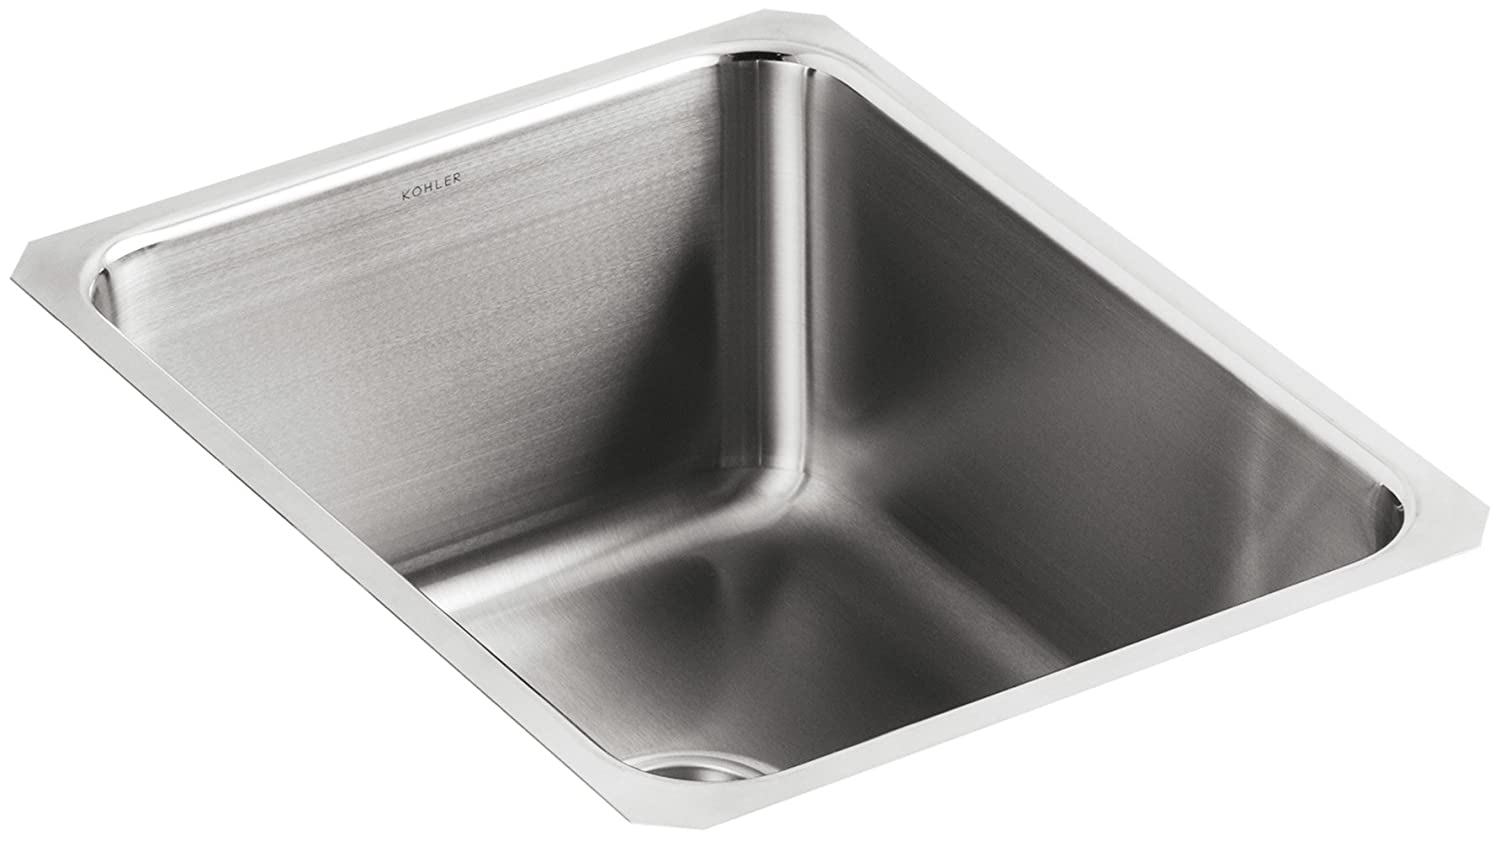 Kohler k 3163 na undertone squared single basin undercounter kitchen kohler k 3163 na undertone squared single basin undercounter kitchen sink 9 12 deep stainless steel single bowl sinks amazon workwithnaturefo